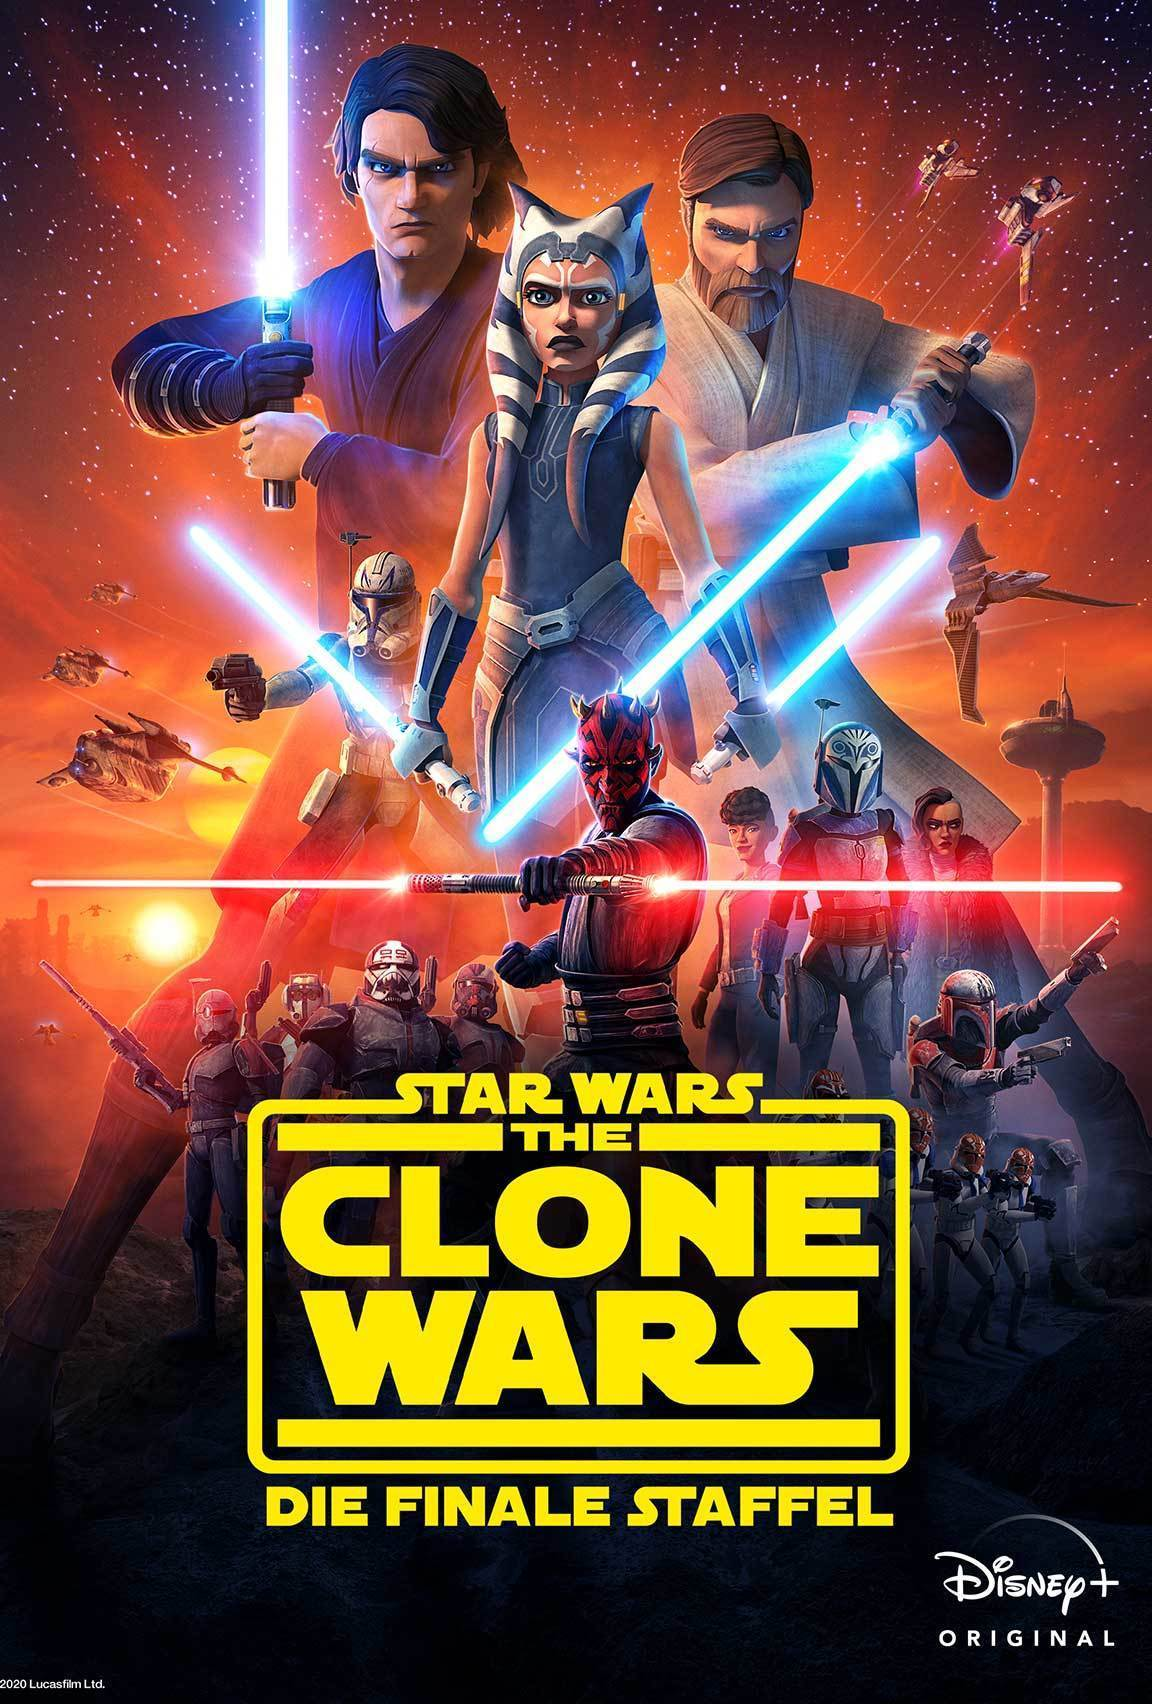 Disney Plus - Star Wars: The Clone Wars: The Final Season - Poster